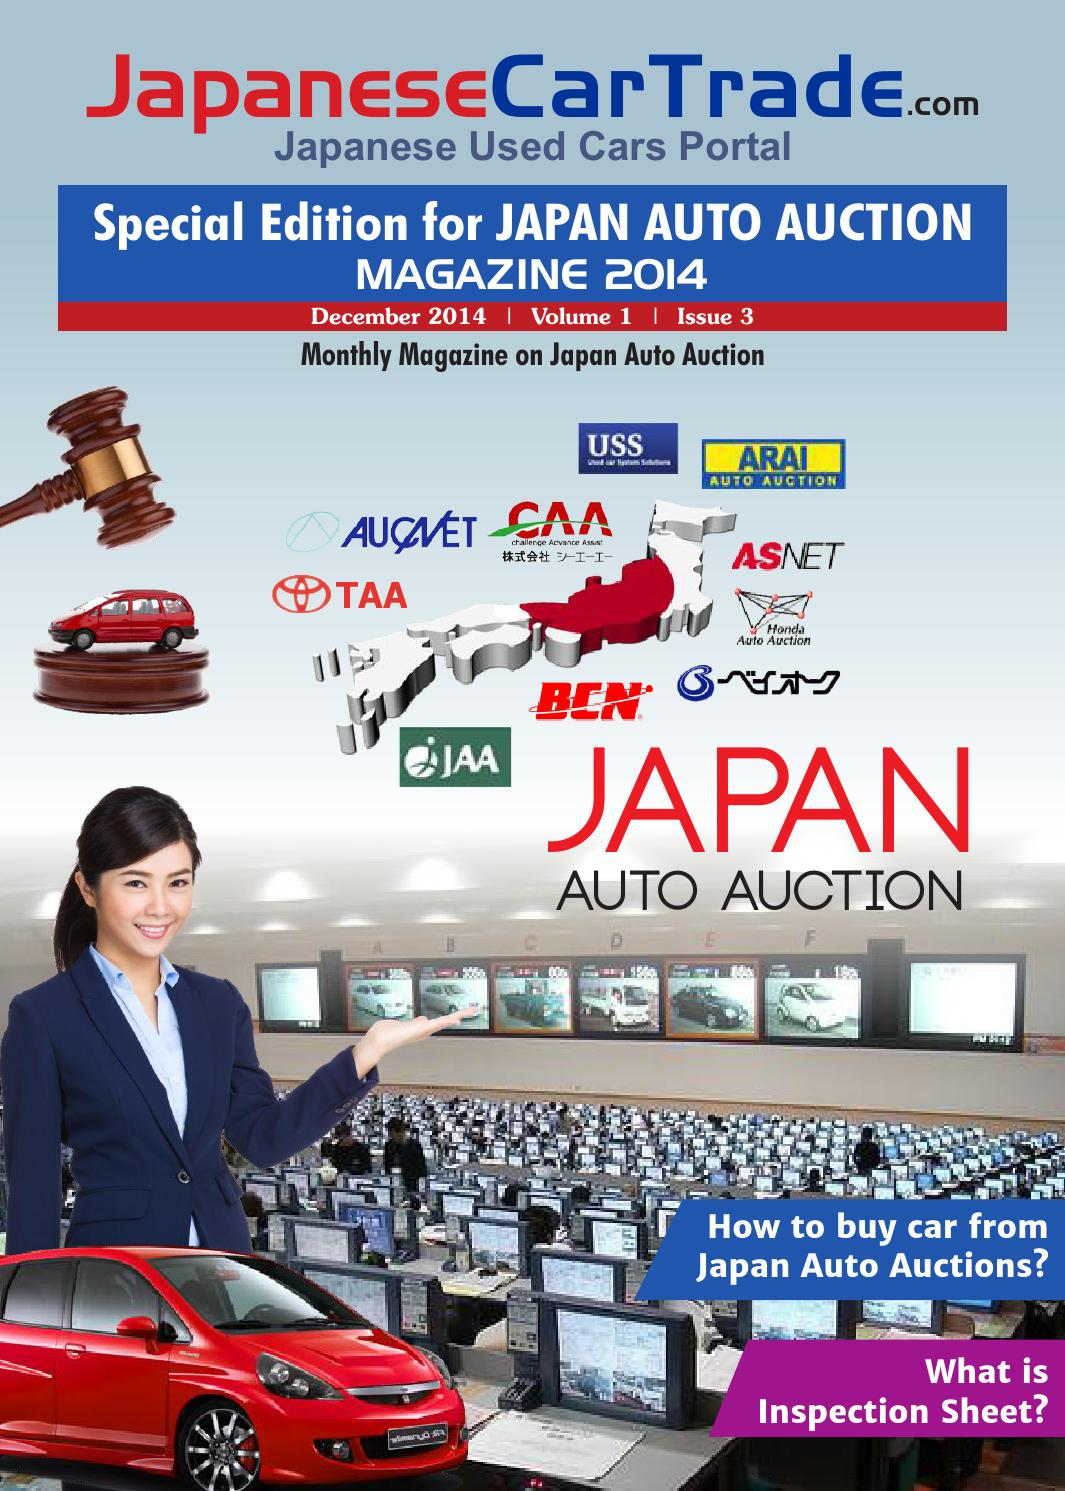 cars on auction in japan